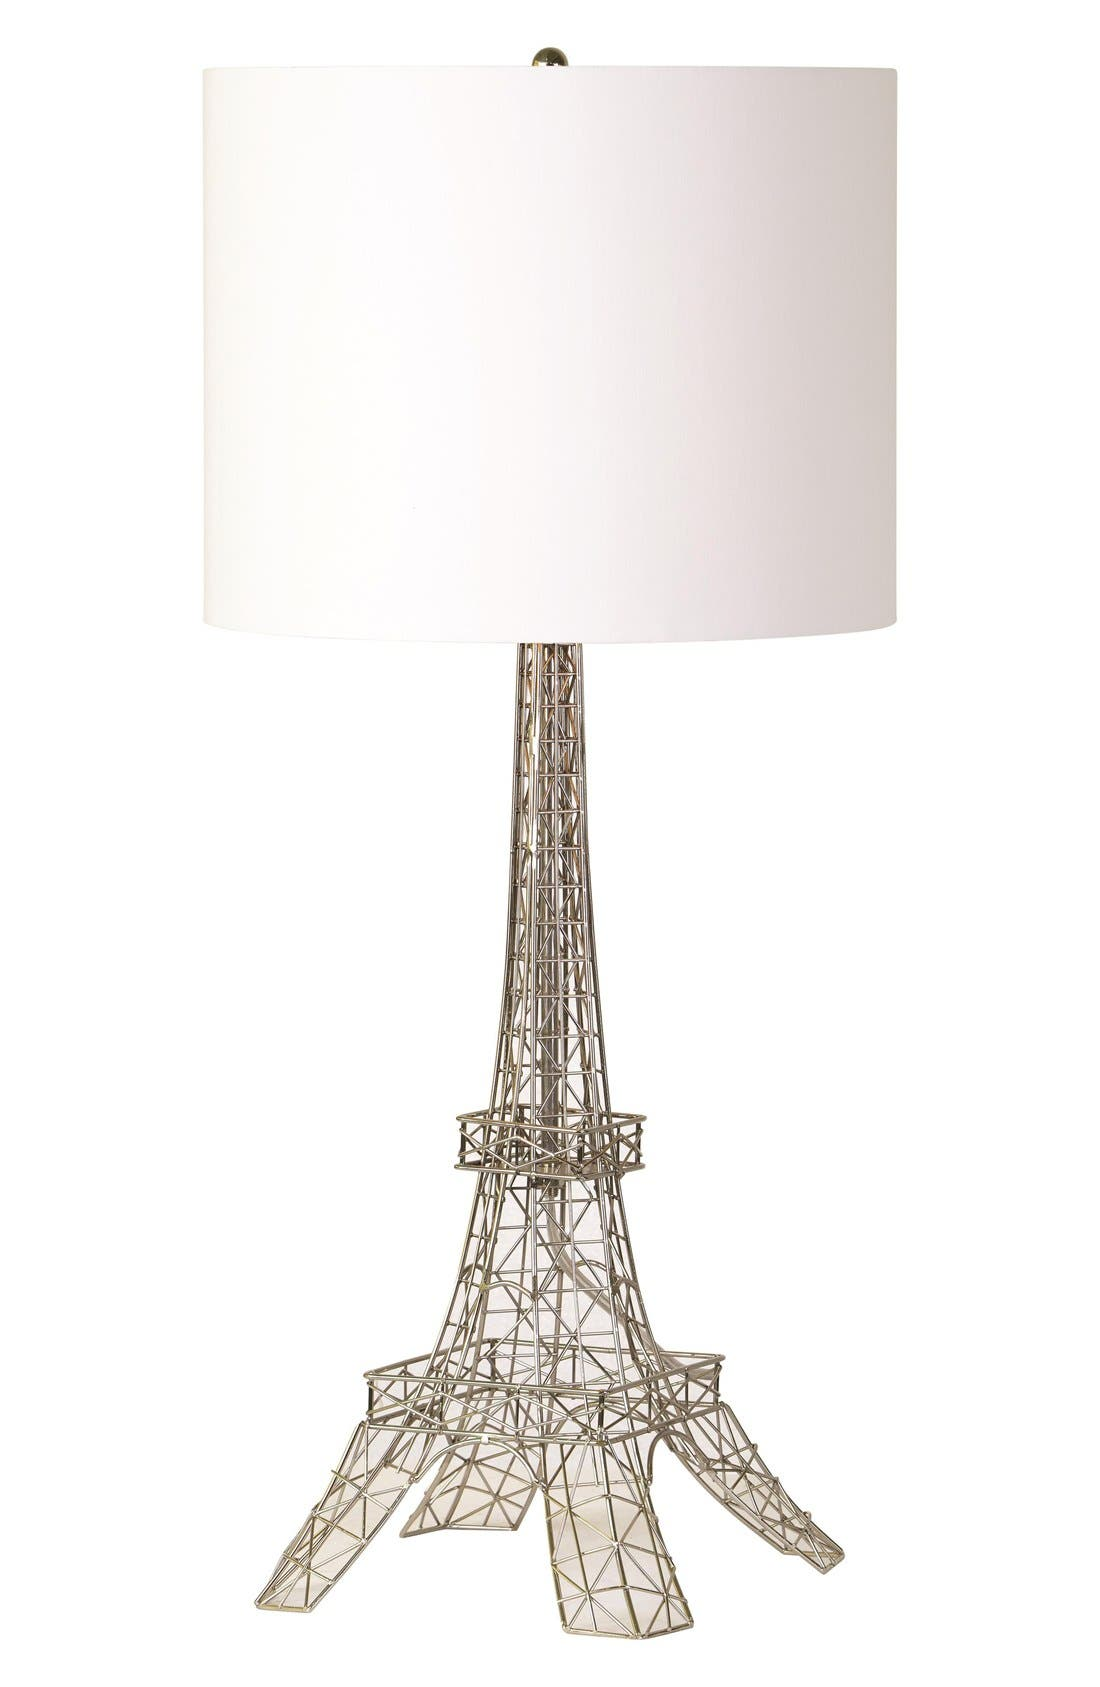 Alternate Image 1 Selected - Renwil'Gustave' Table Lamp